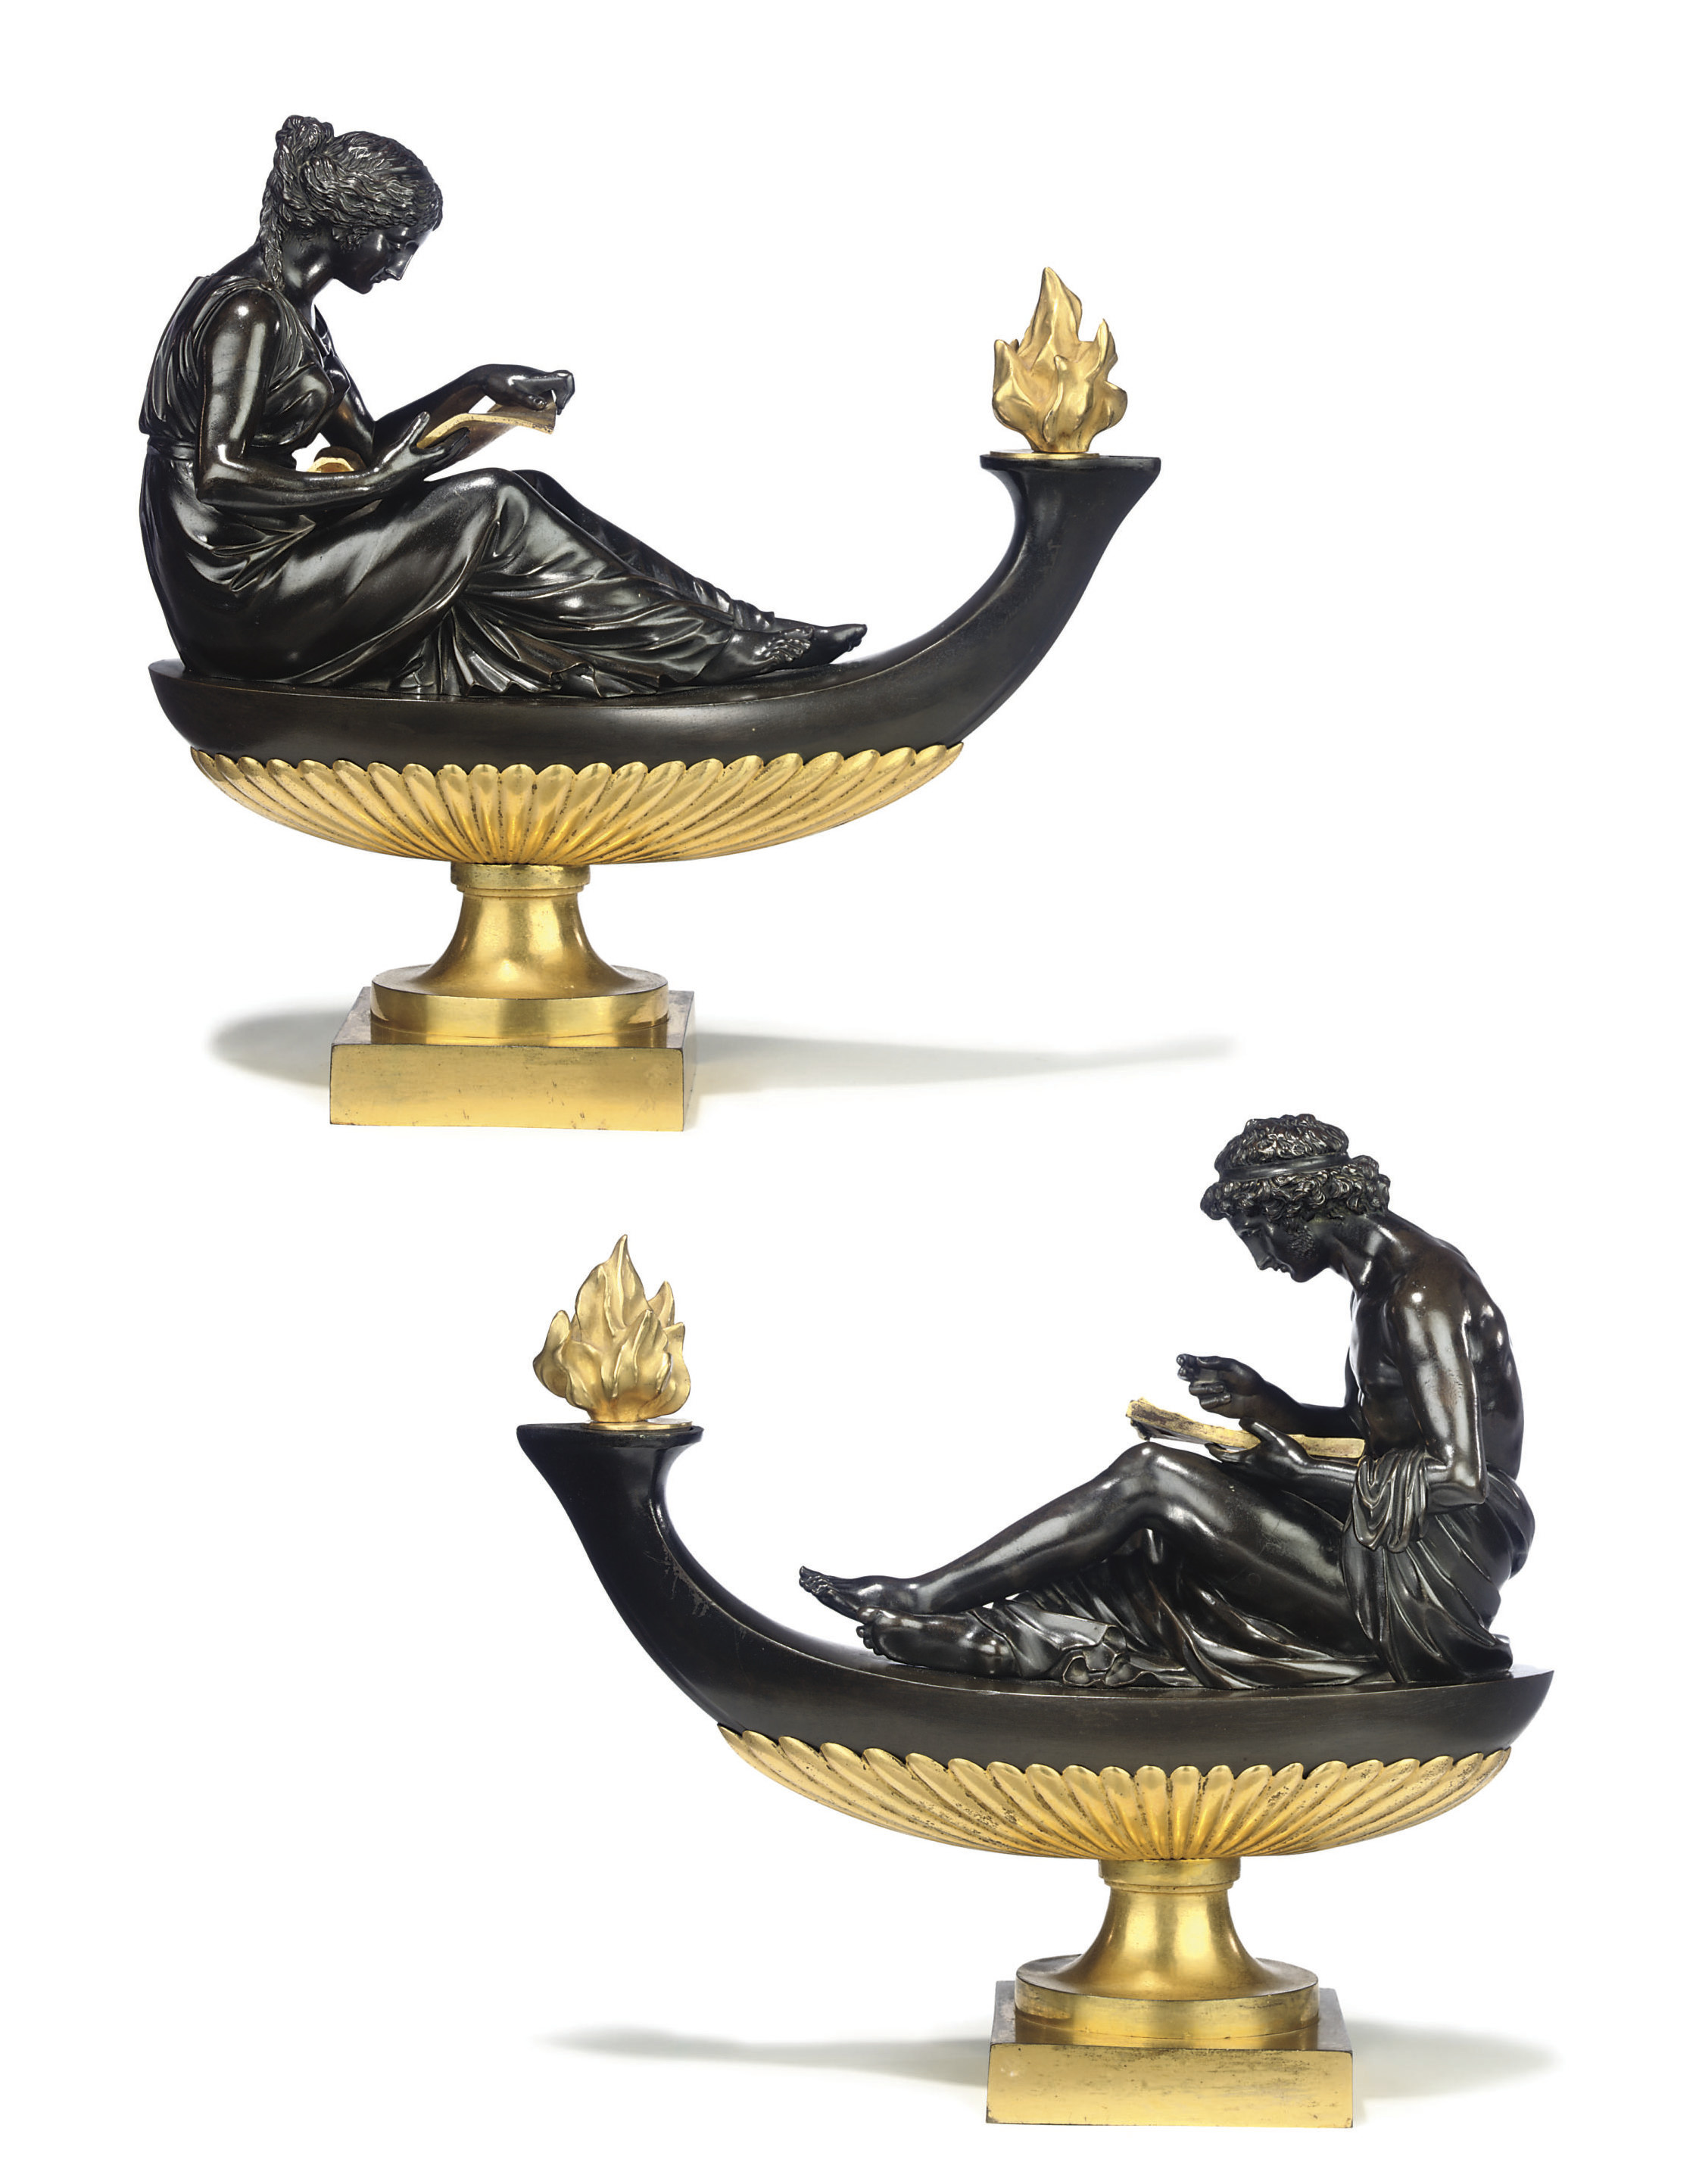 A PAIR OF LOUIS XVI BRONZE AND ORMOLU OIL-LAMPS